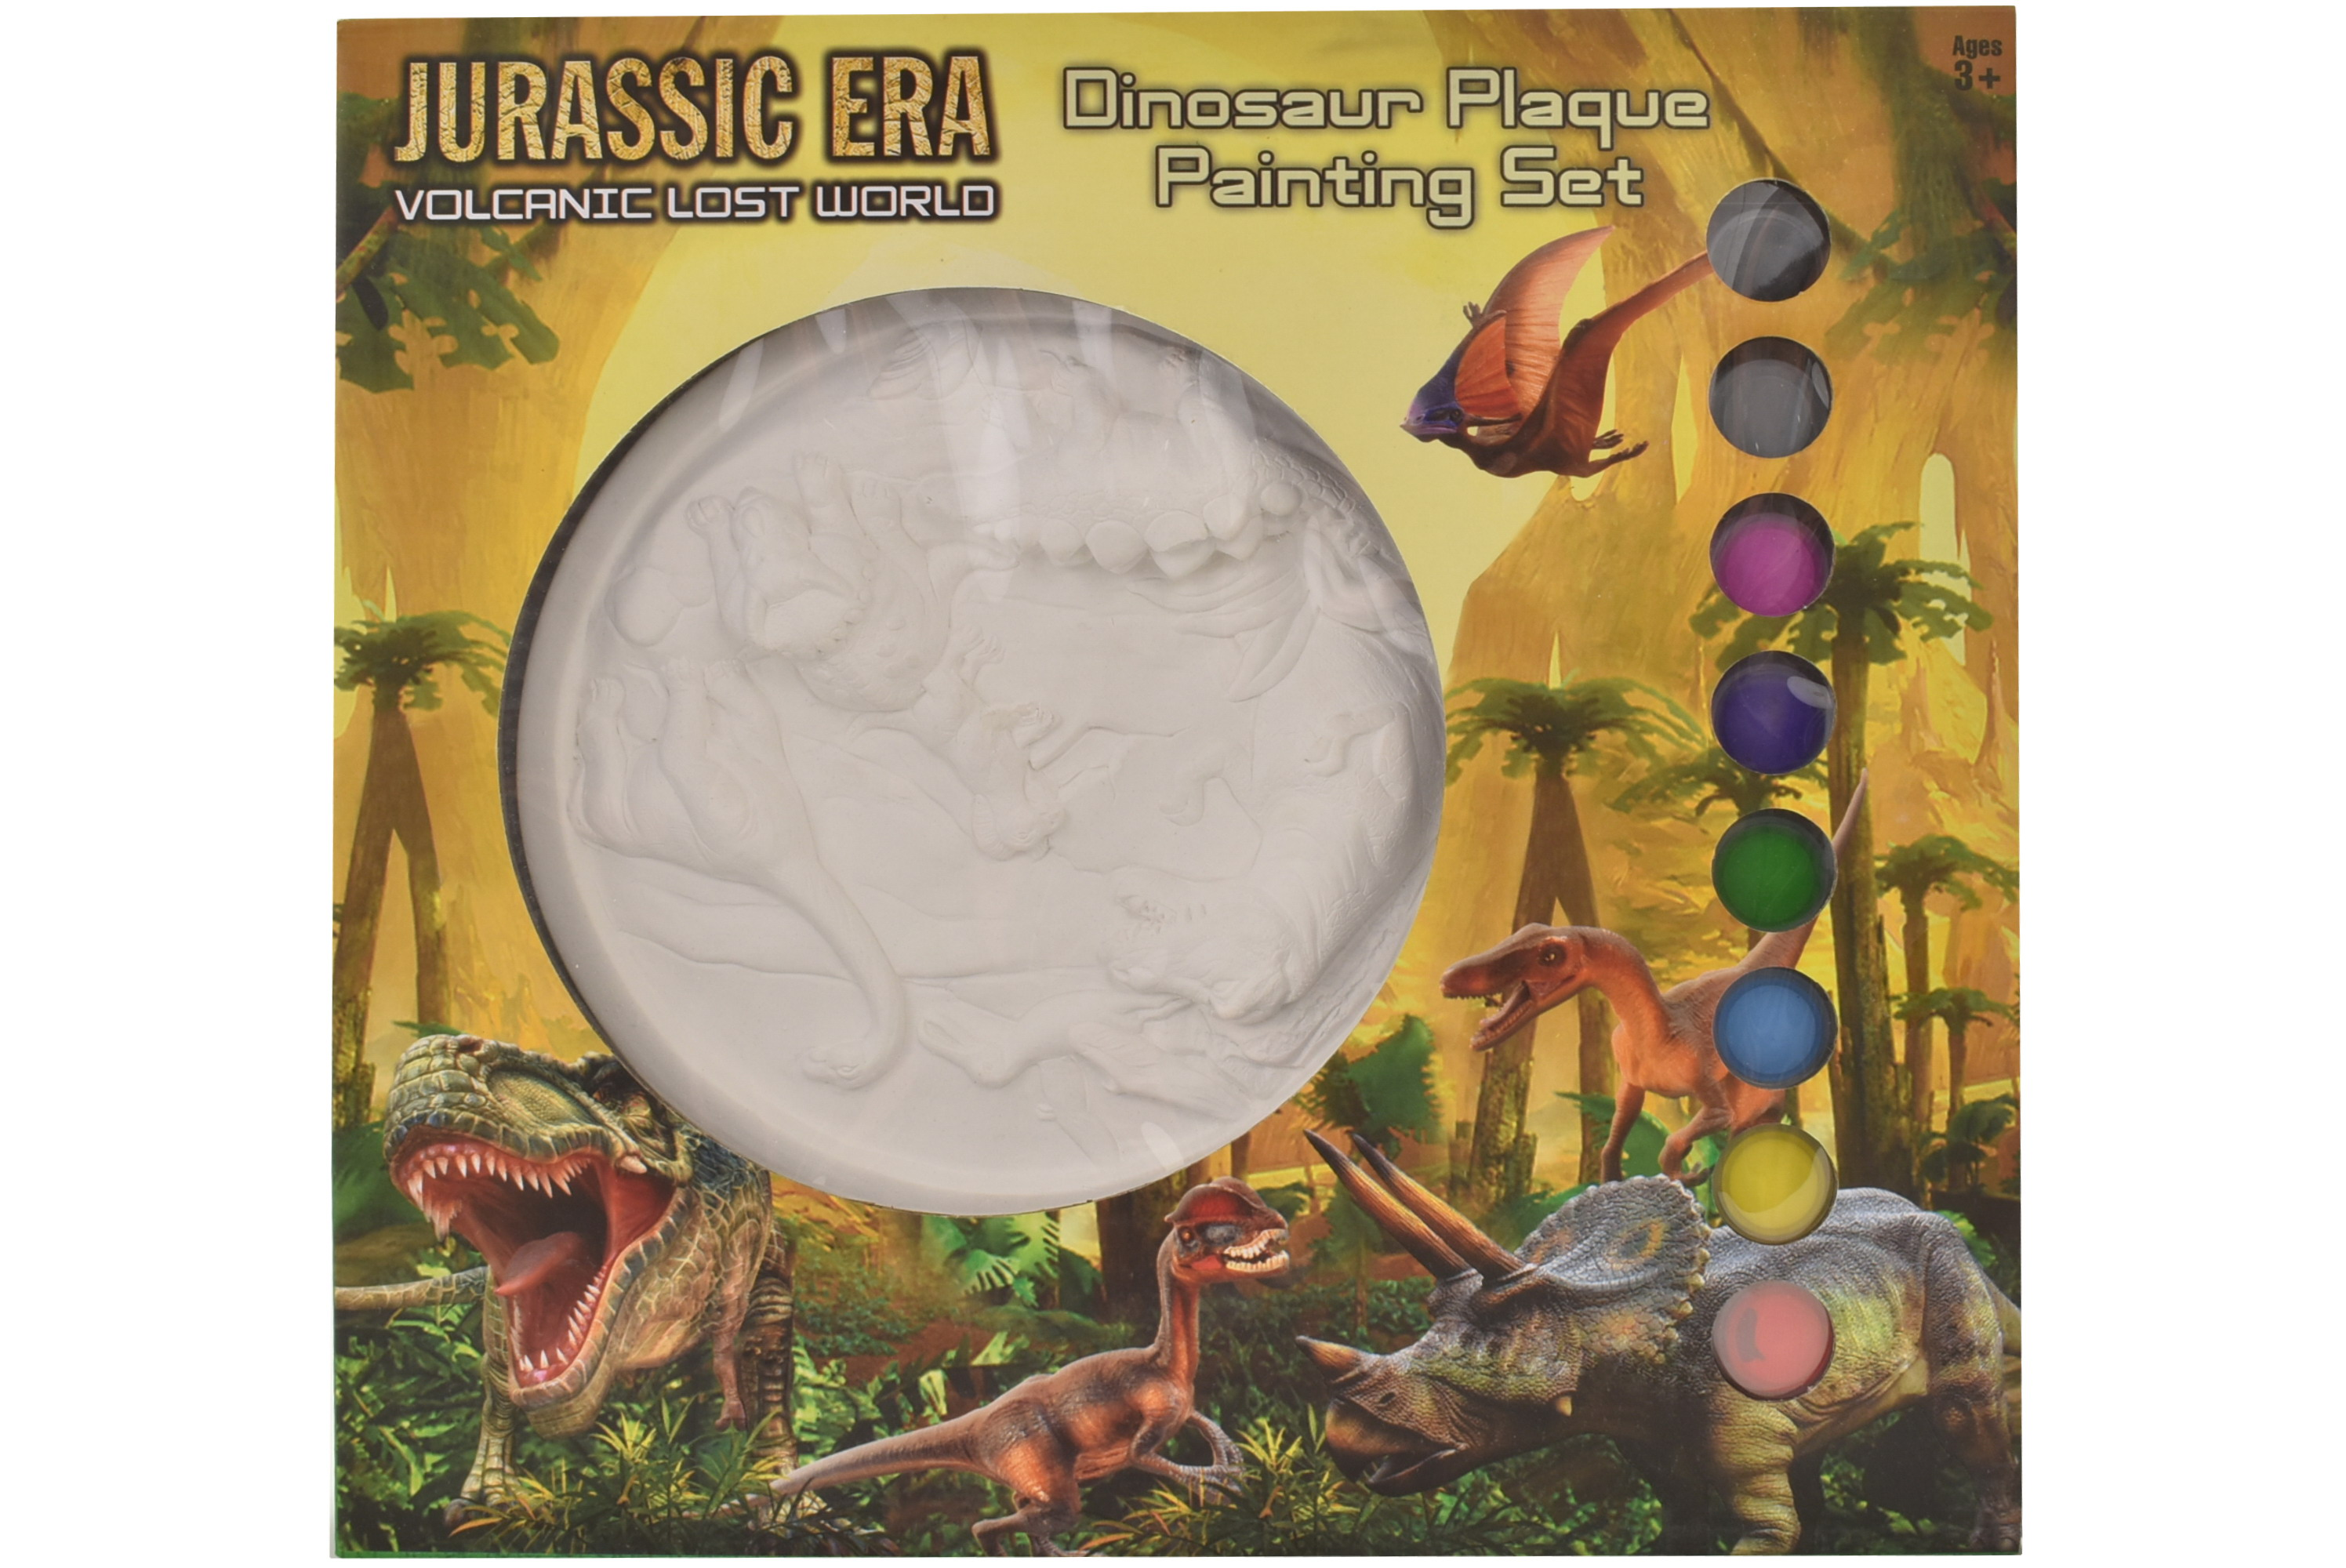 Dinosaur Plaque Plaster Painting Set In Window Box